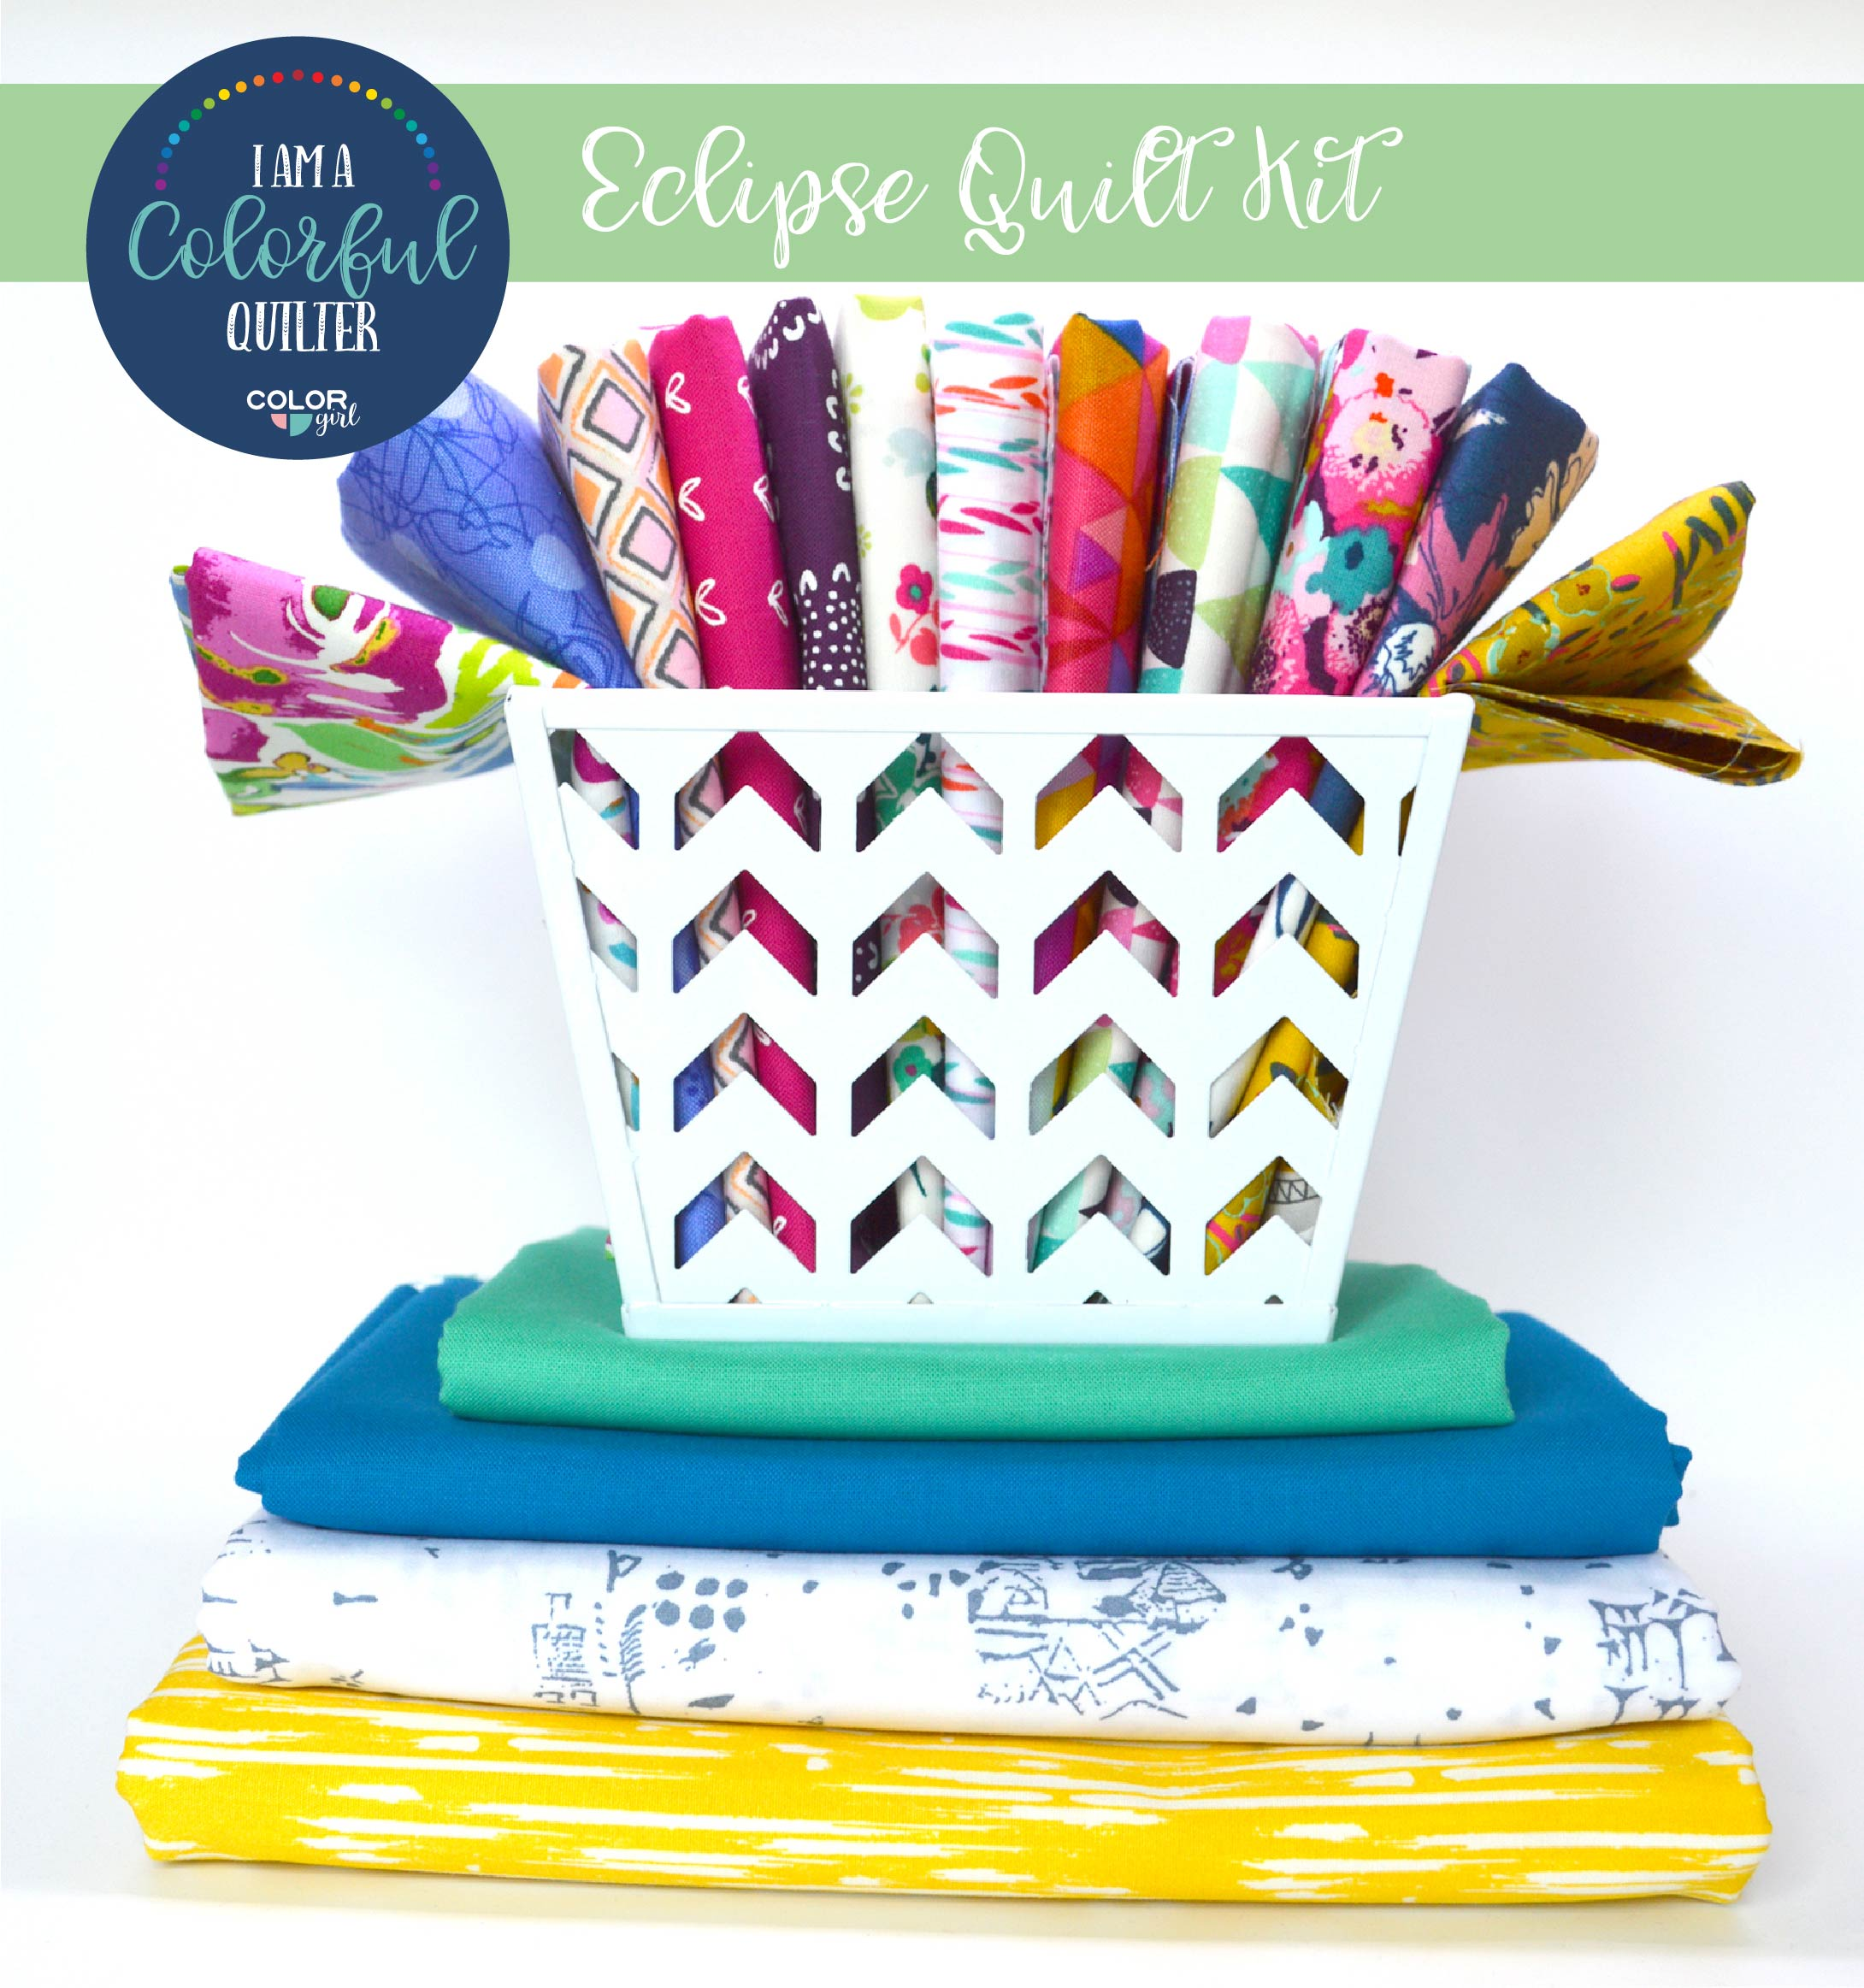 Eclipse quilt kit sold by Color Girl Quilts, uses the Classic Curves Ruler